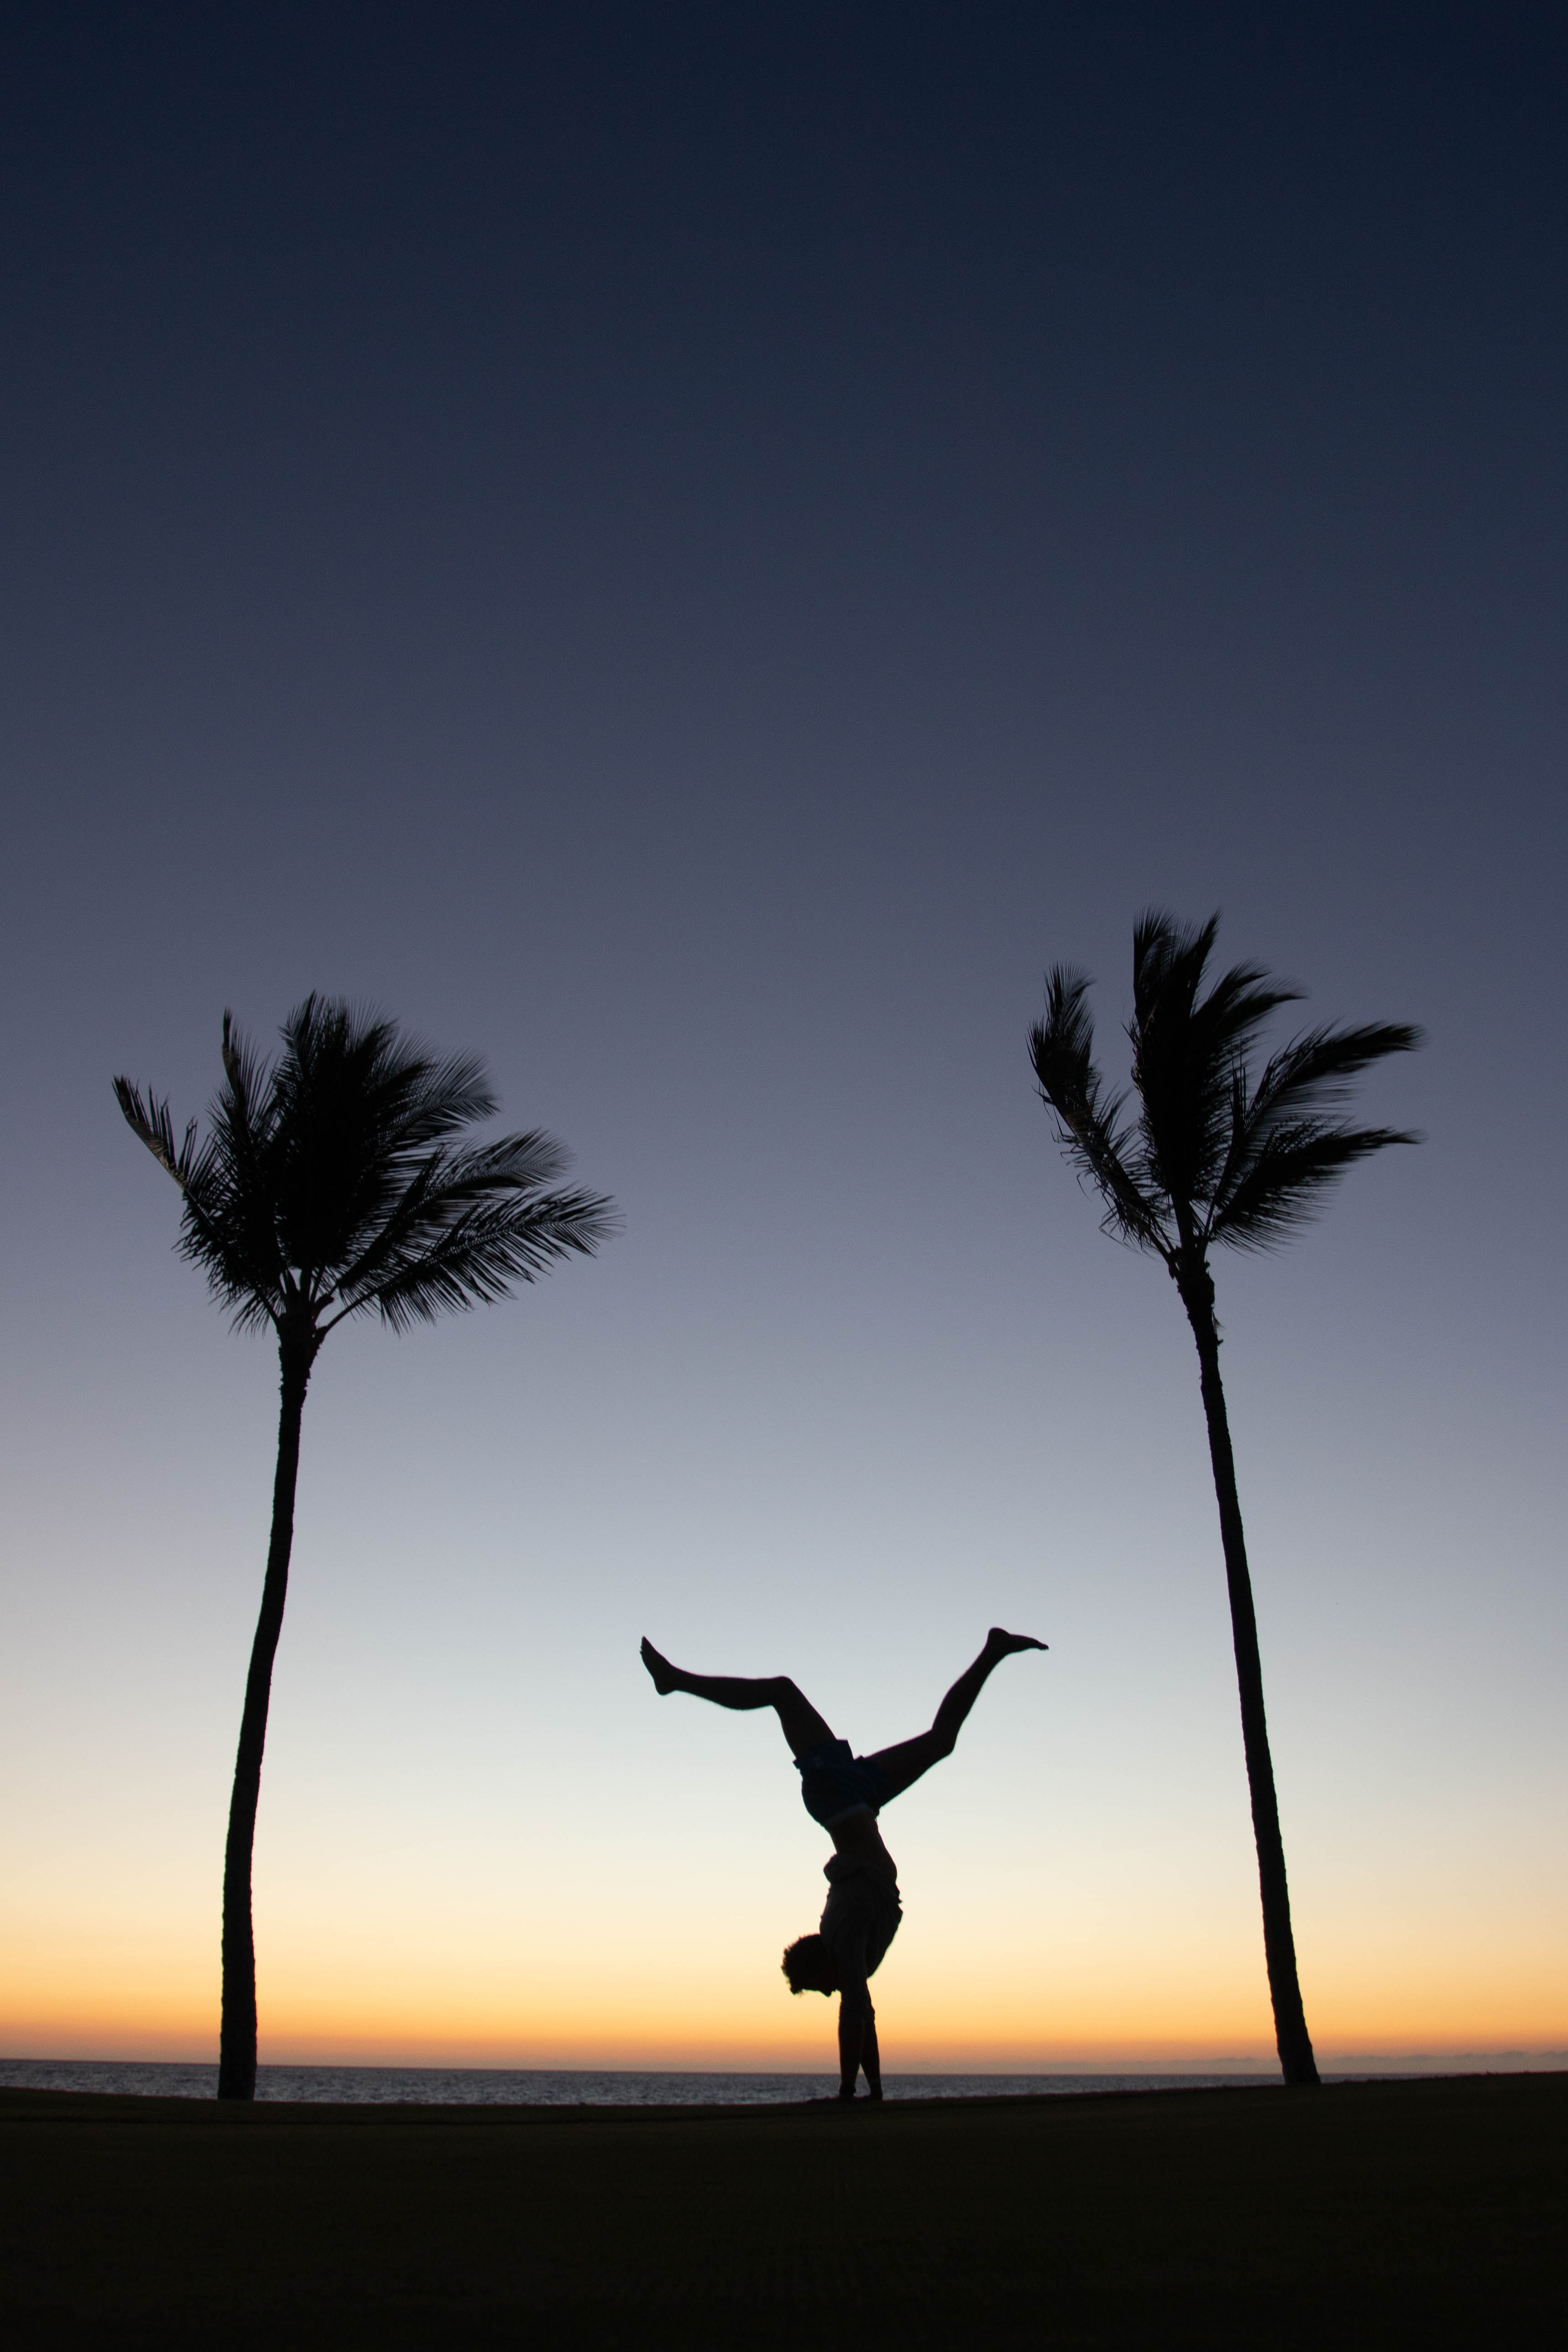 man doing exercise during sunset